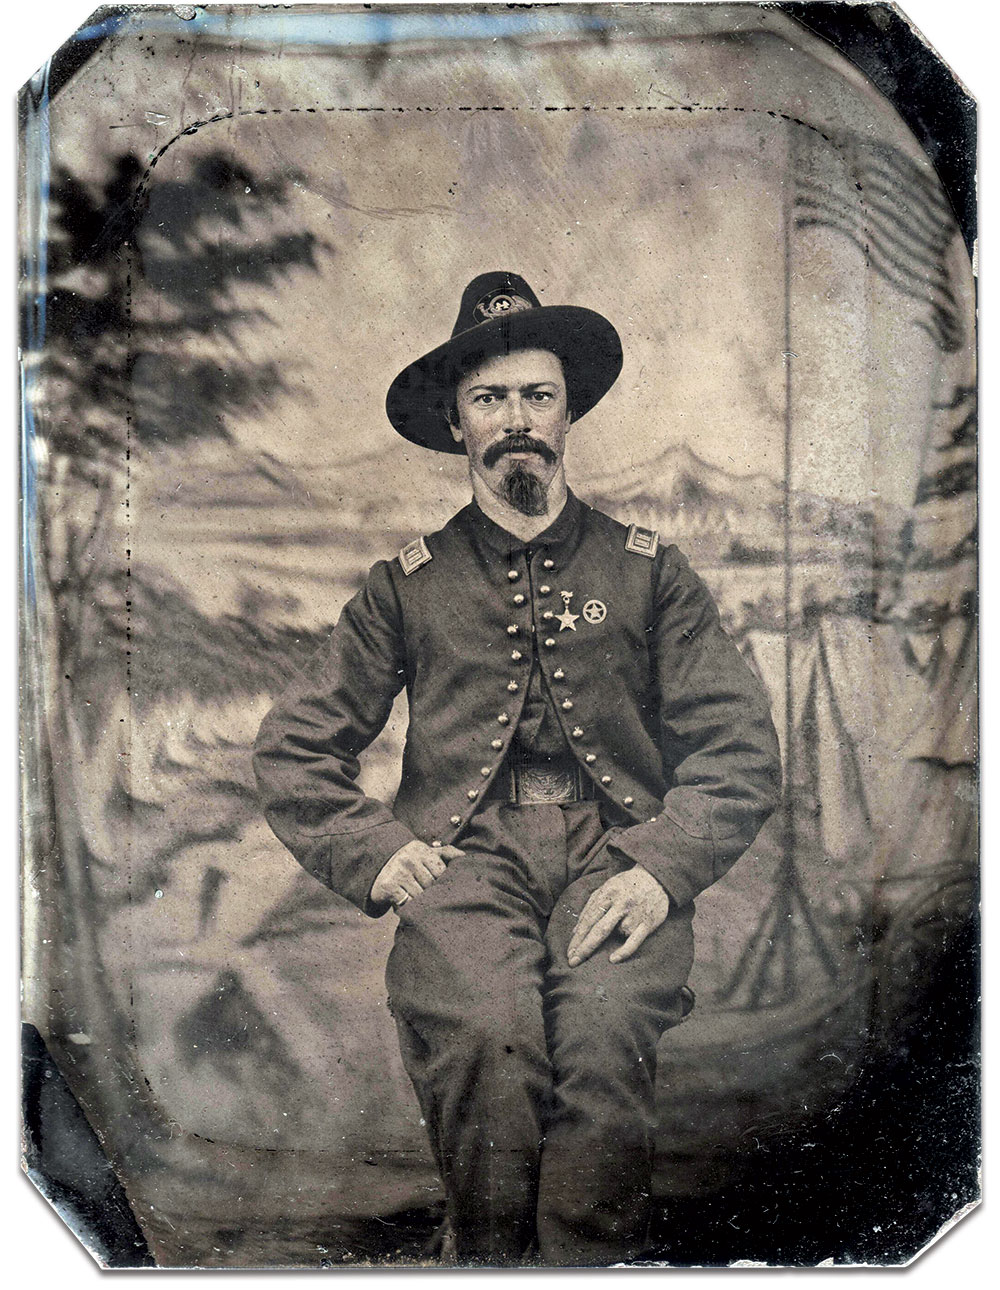 Quarter-plate tintype by an anonymous photographer. Joseph Stickelmyer collection.